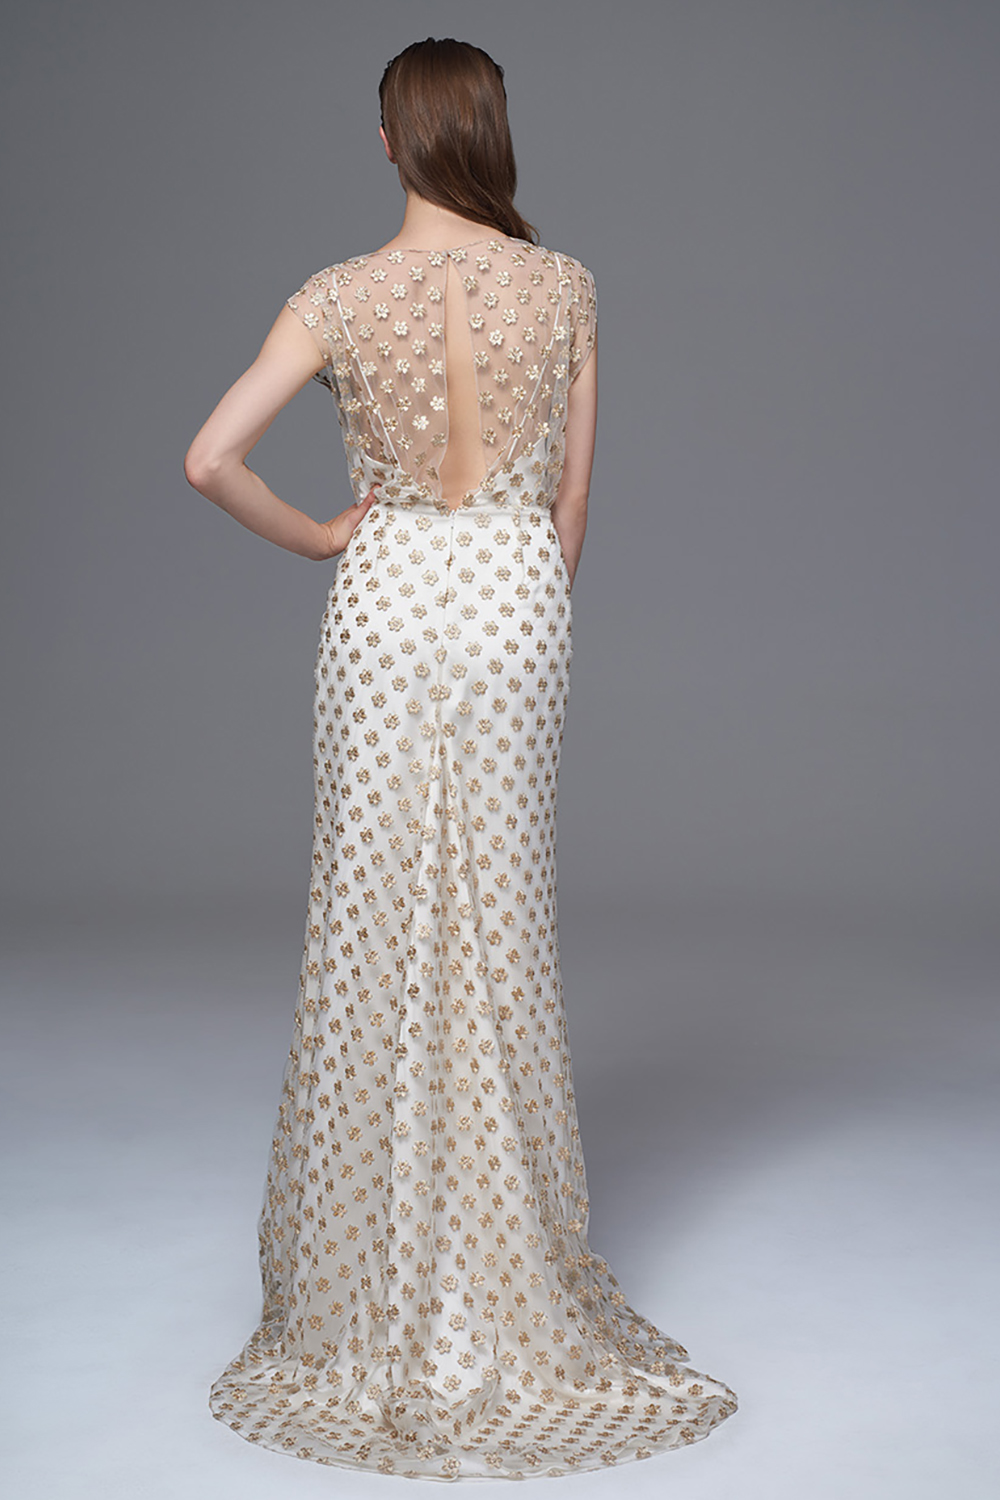 THE CHLOE GOLD FLOWER DRESS WITH SLASH NECK AND GODET TRAIN. BRIDAL WEDDING DRESS BY HALFPENNY LONDON